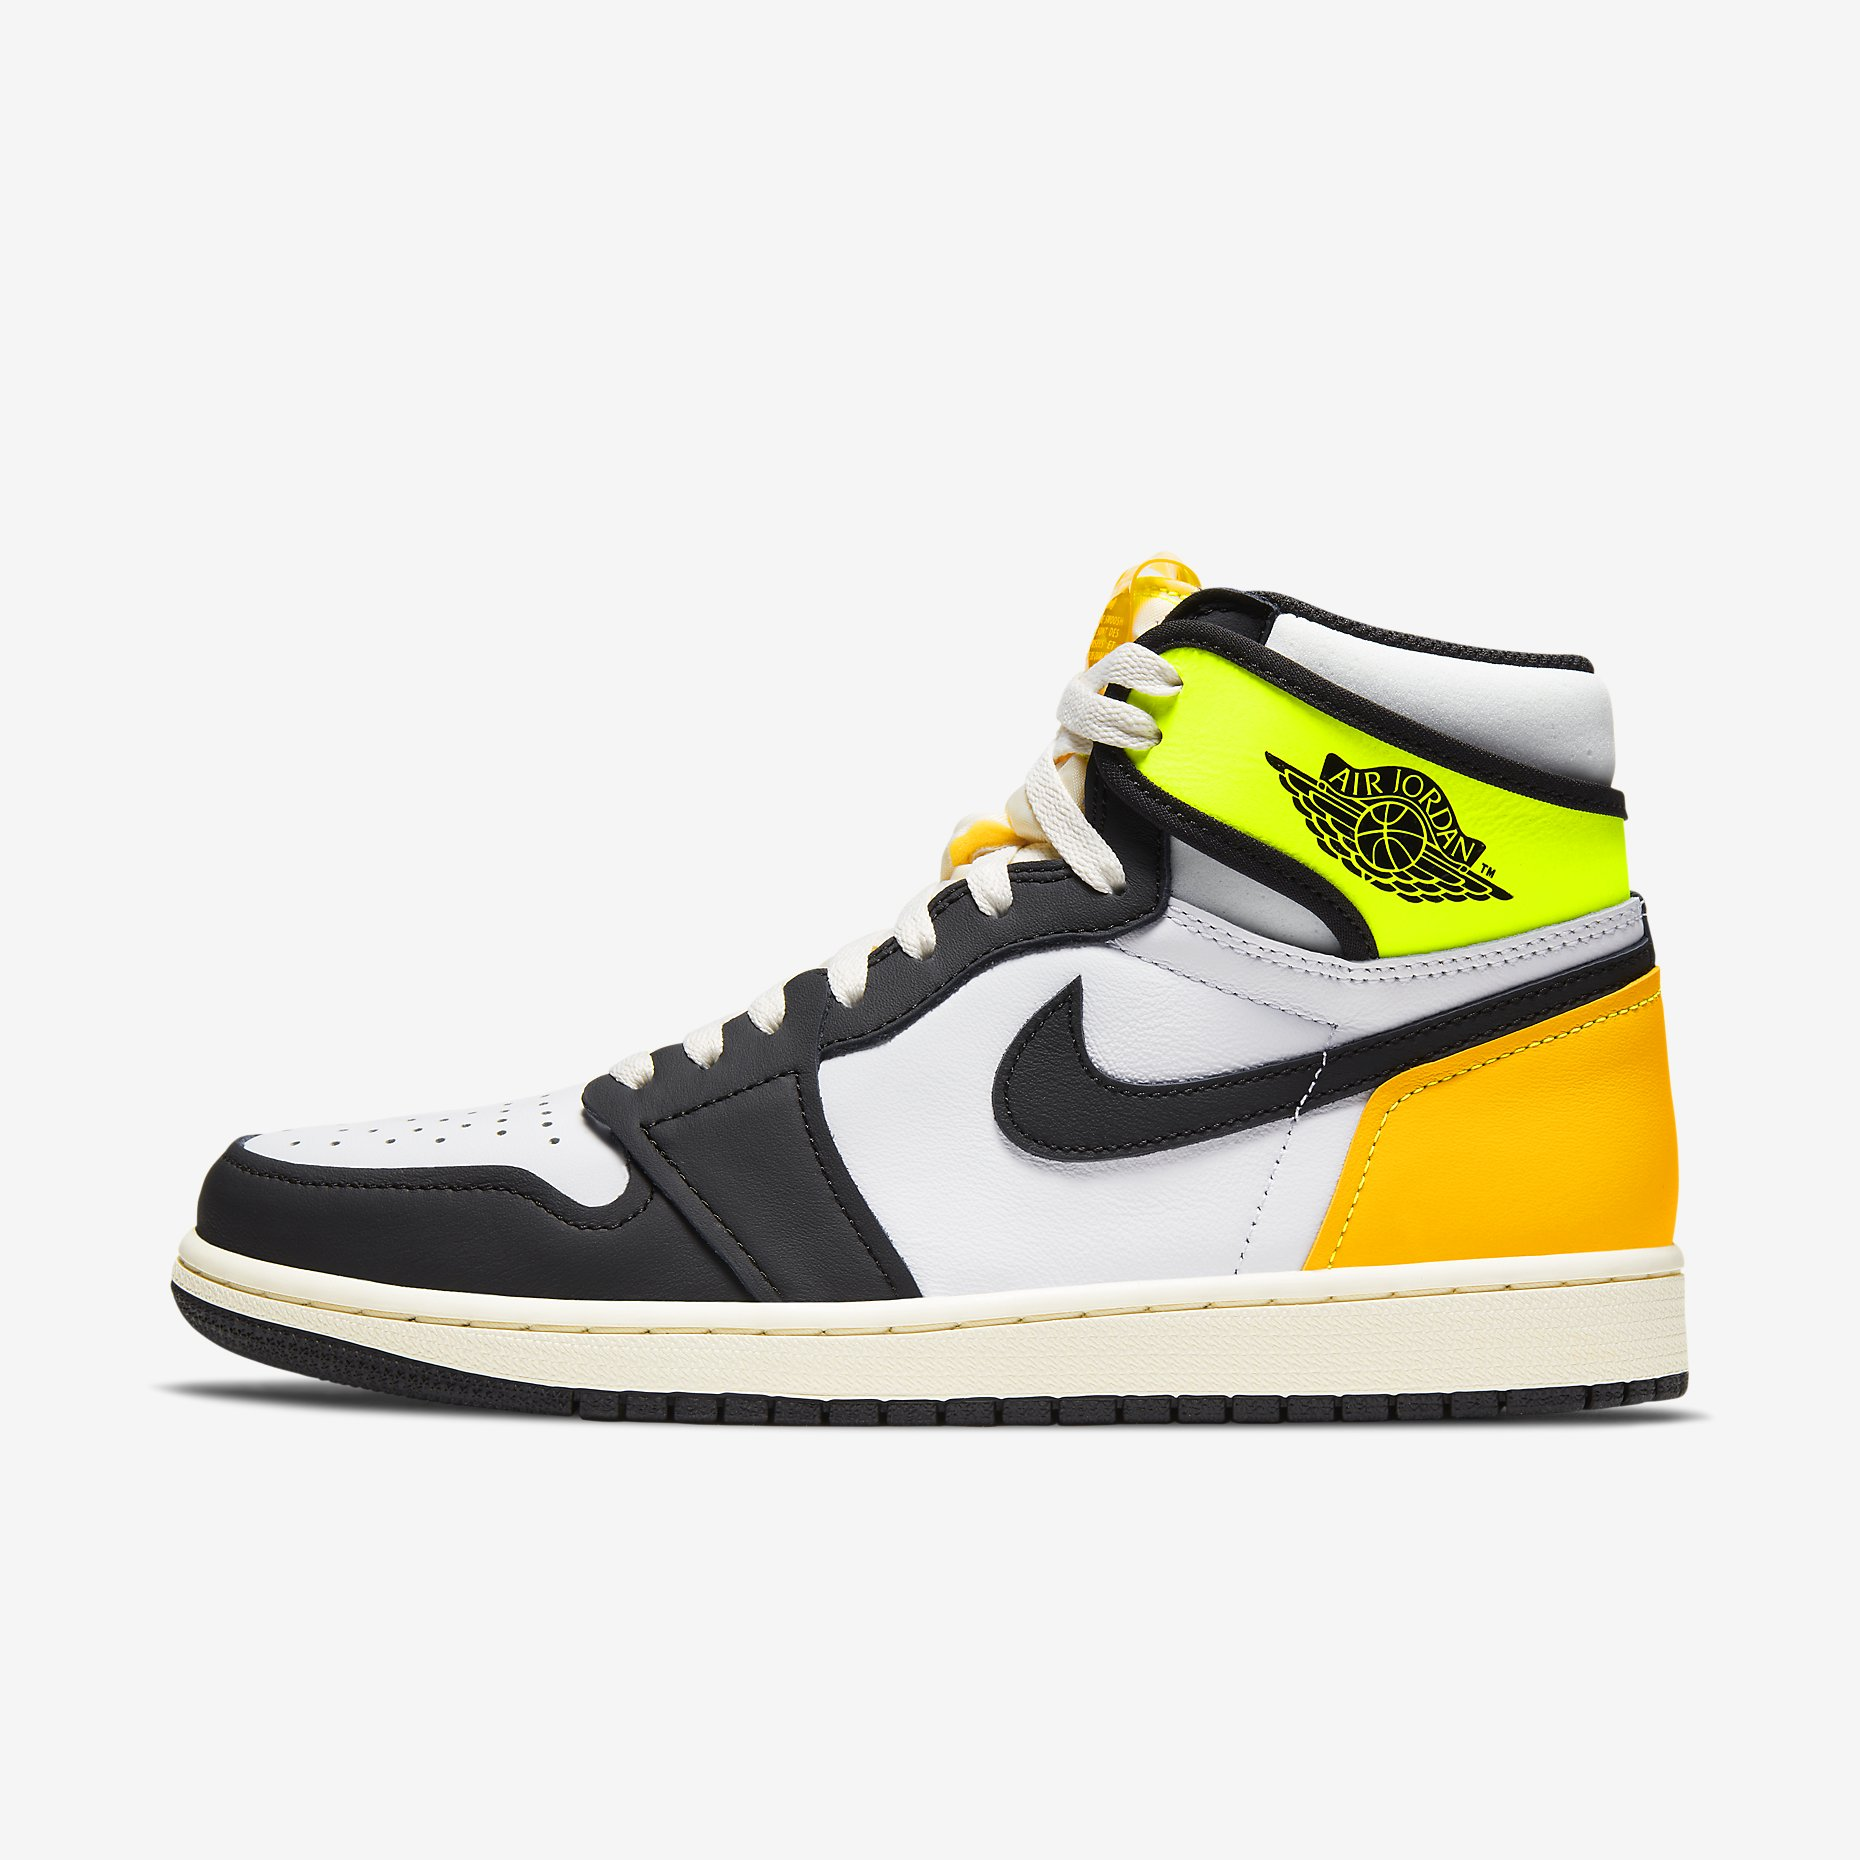 Air Jordan 1 Retro High OG 'Volt Gold'}